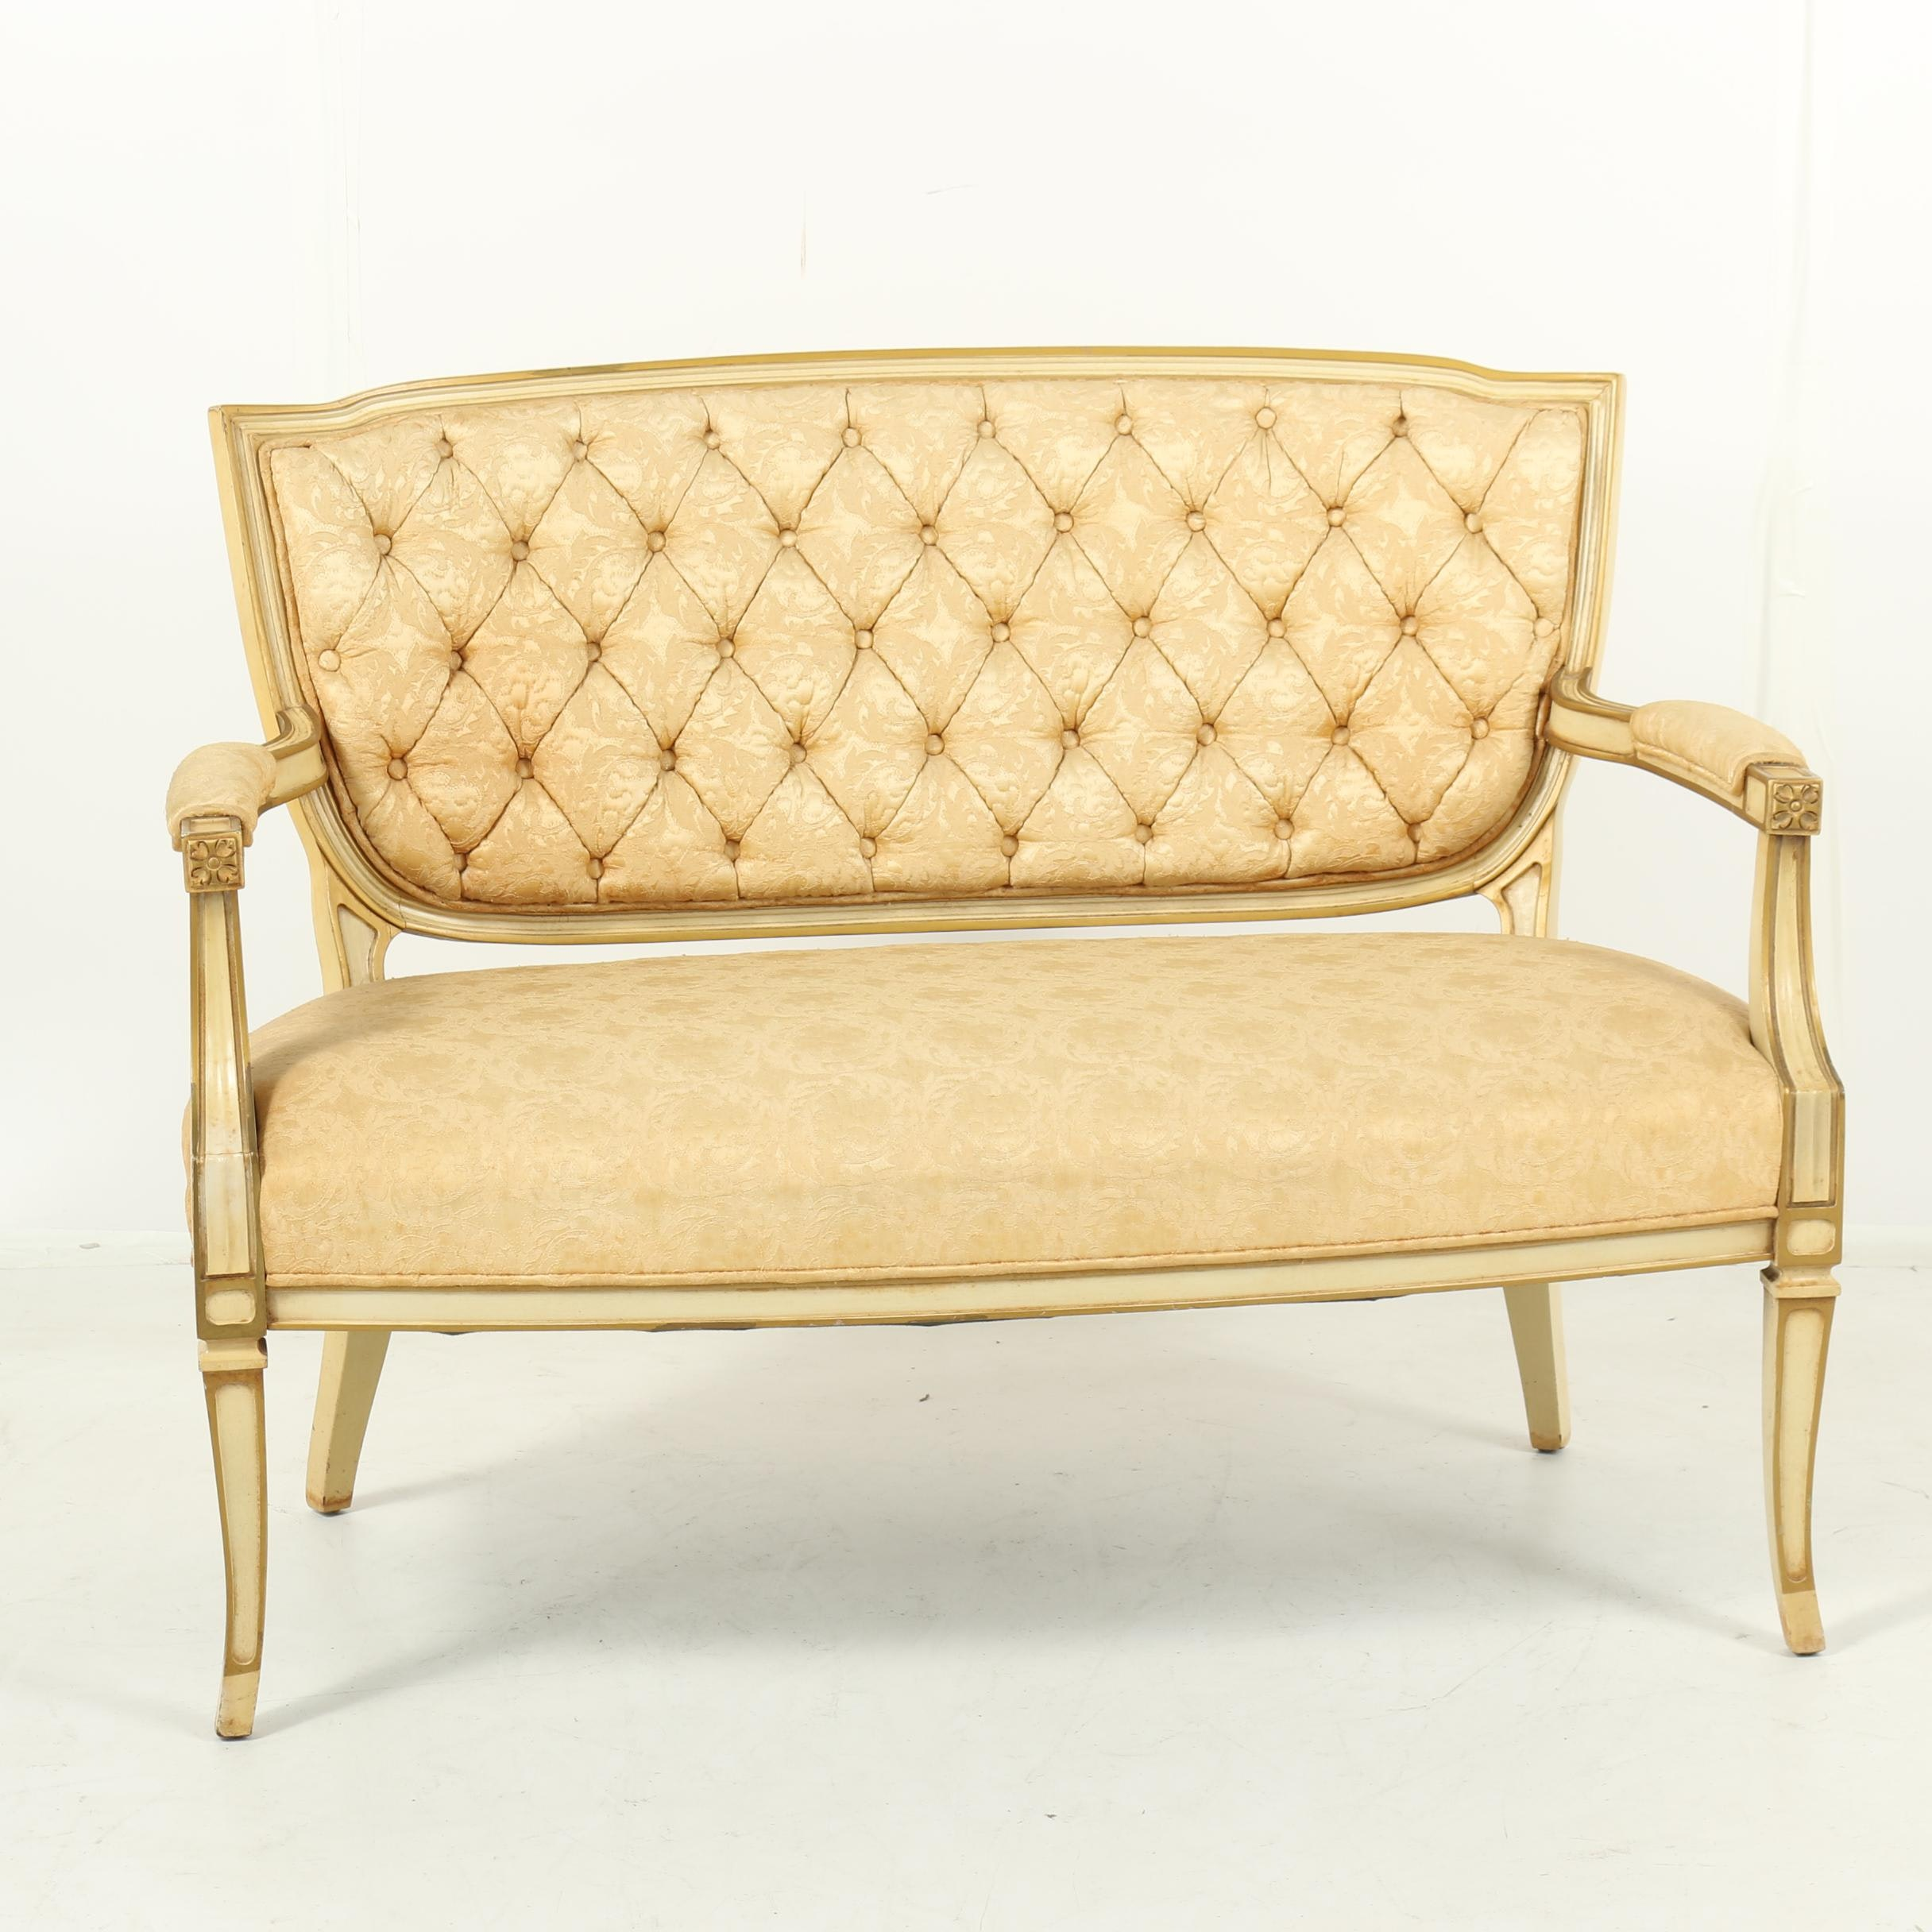 Louis XV Style Painted Wood Frame Upholstered Settee, Late 20th Century